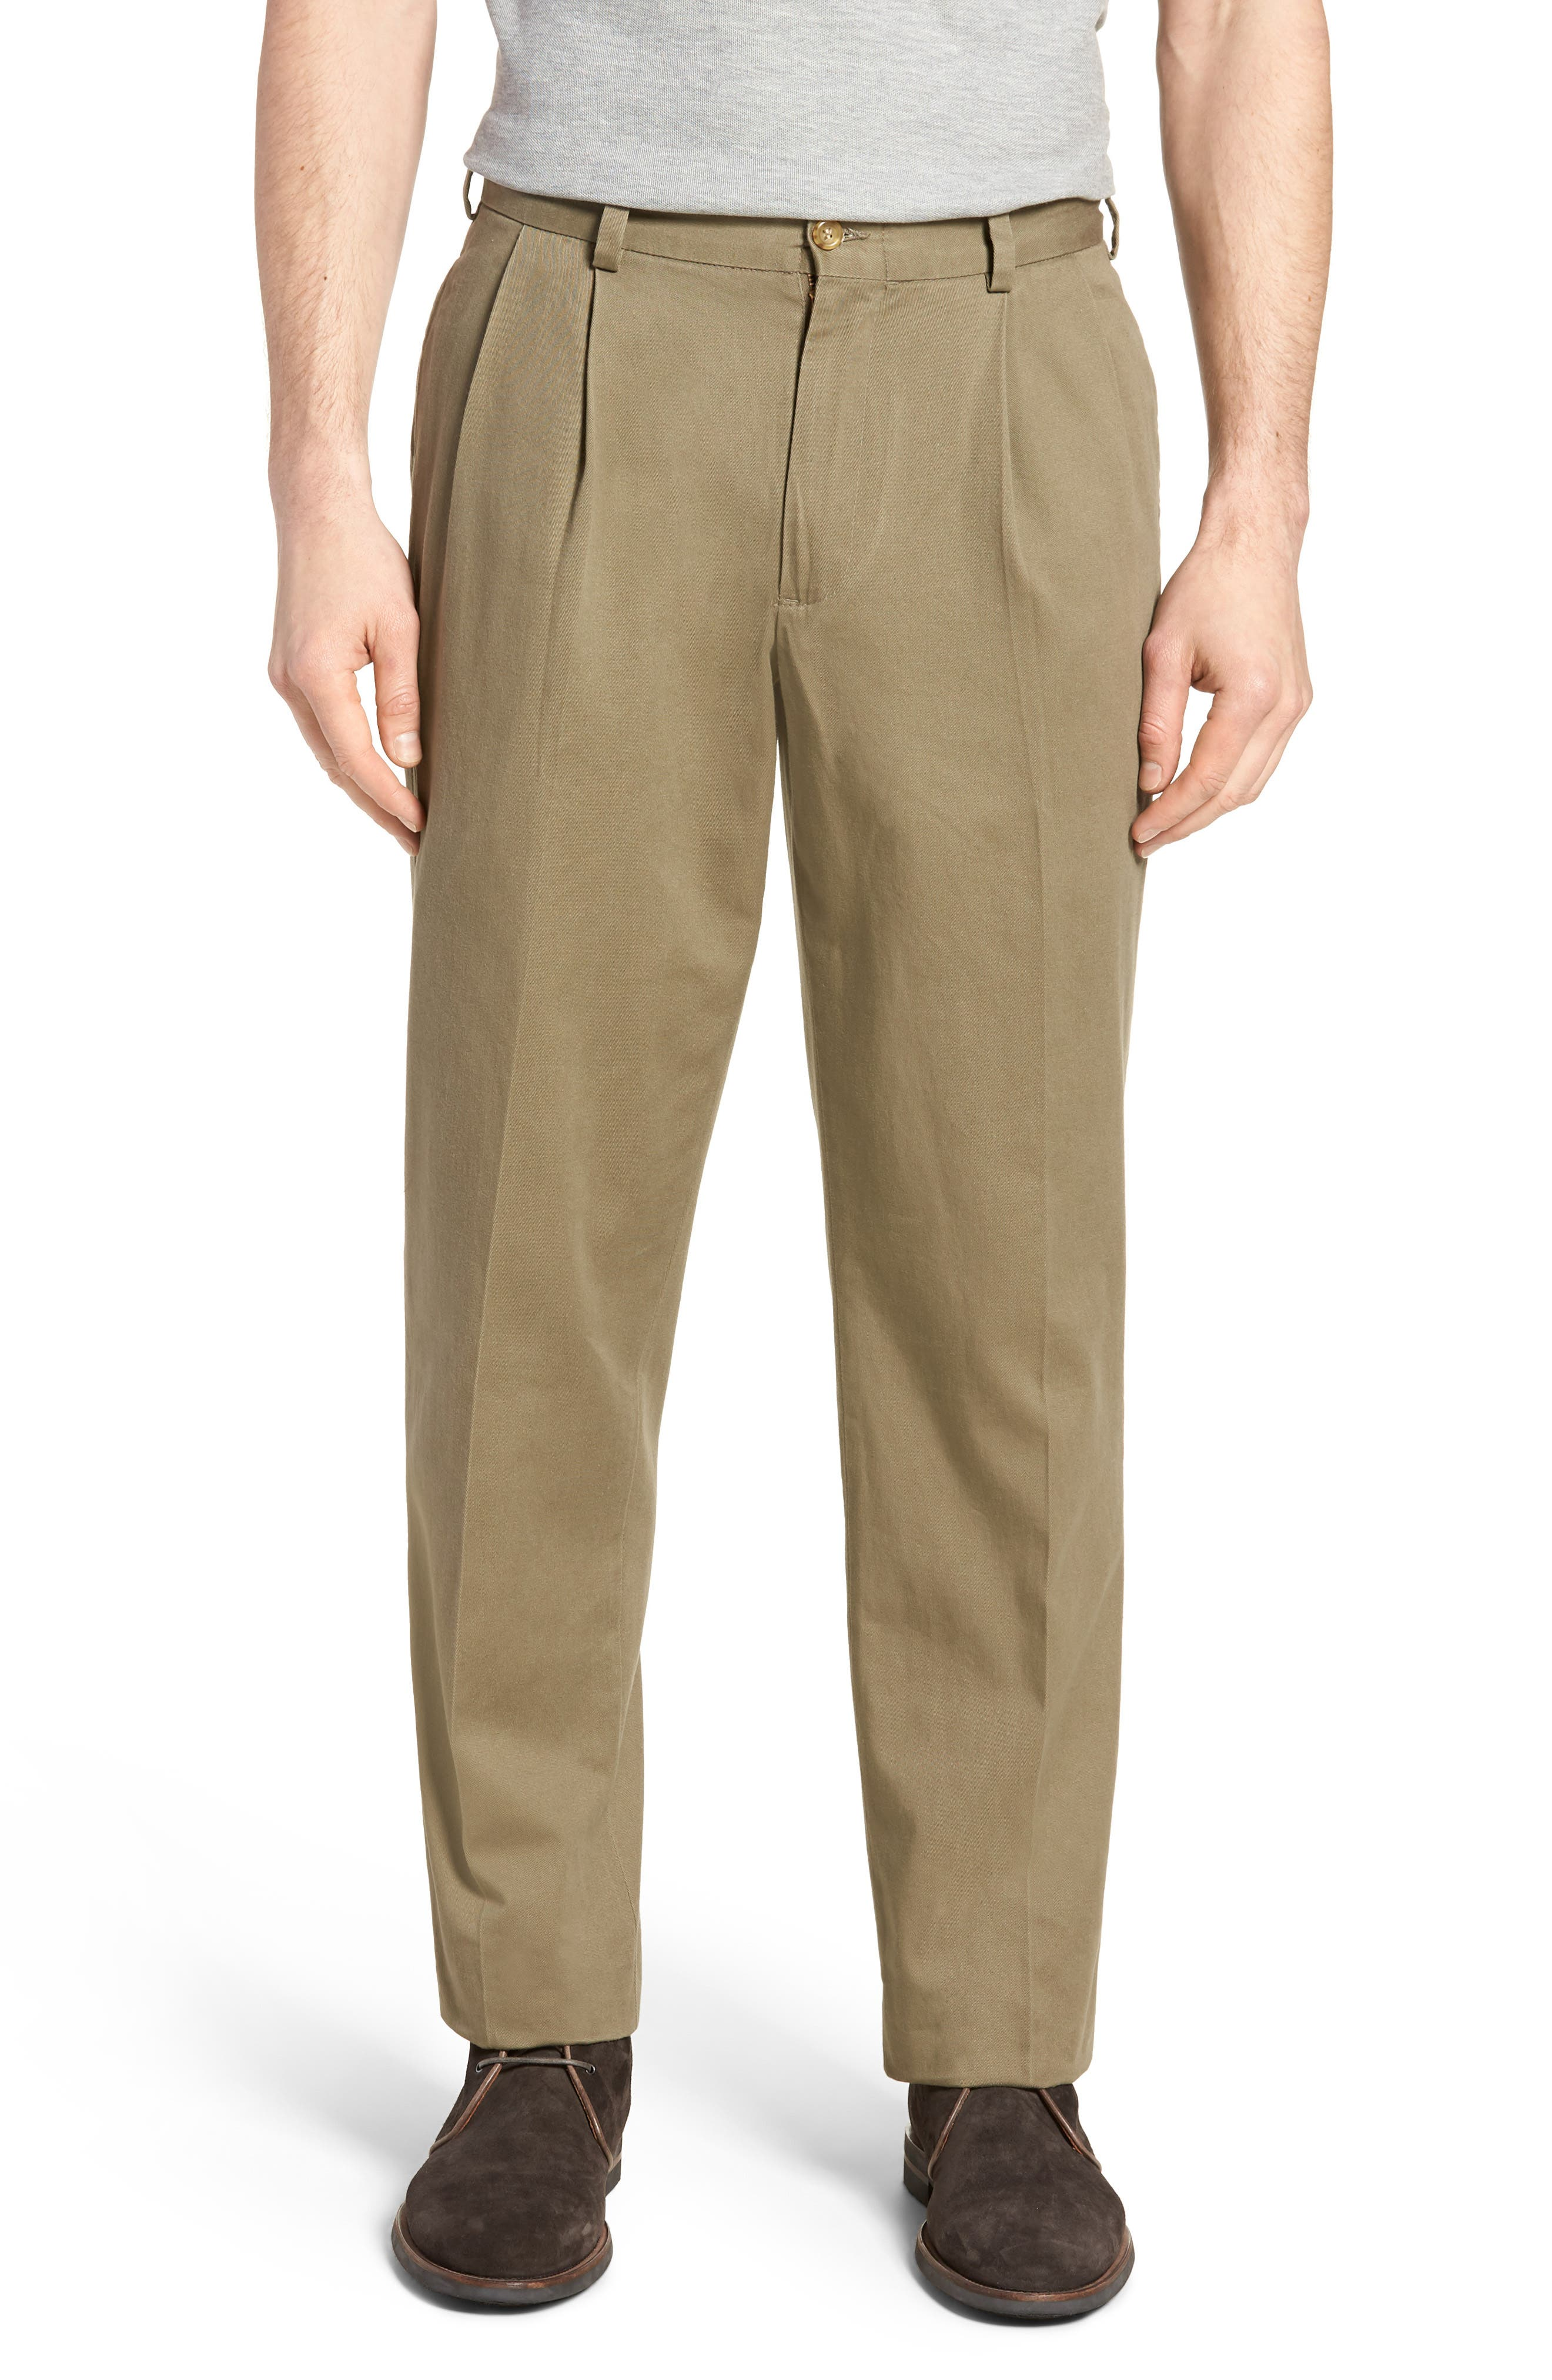 M2 Classic Fit Vintage Twill Pleated Pants,                         Main,                         color, Olive